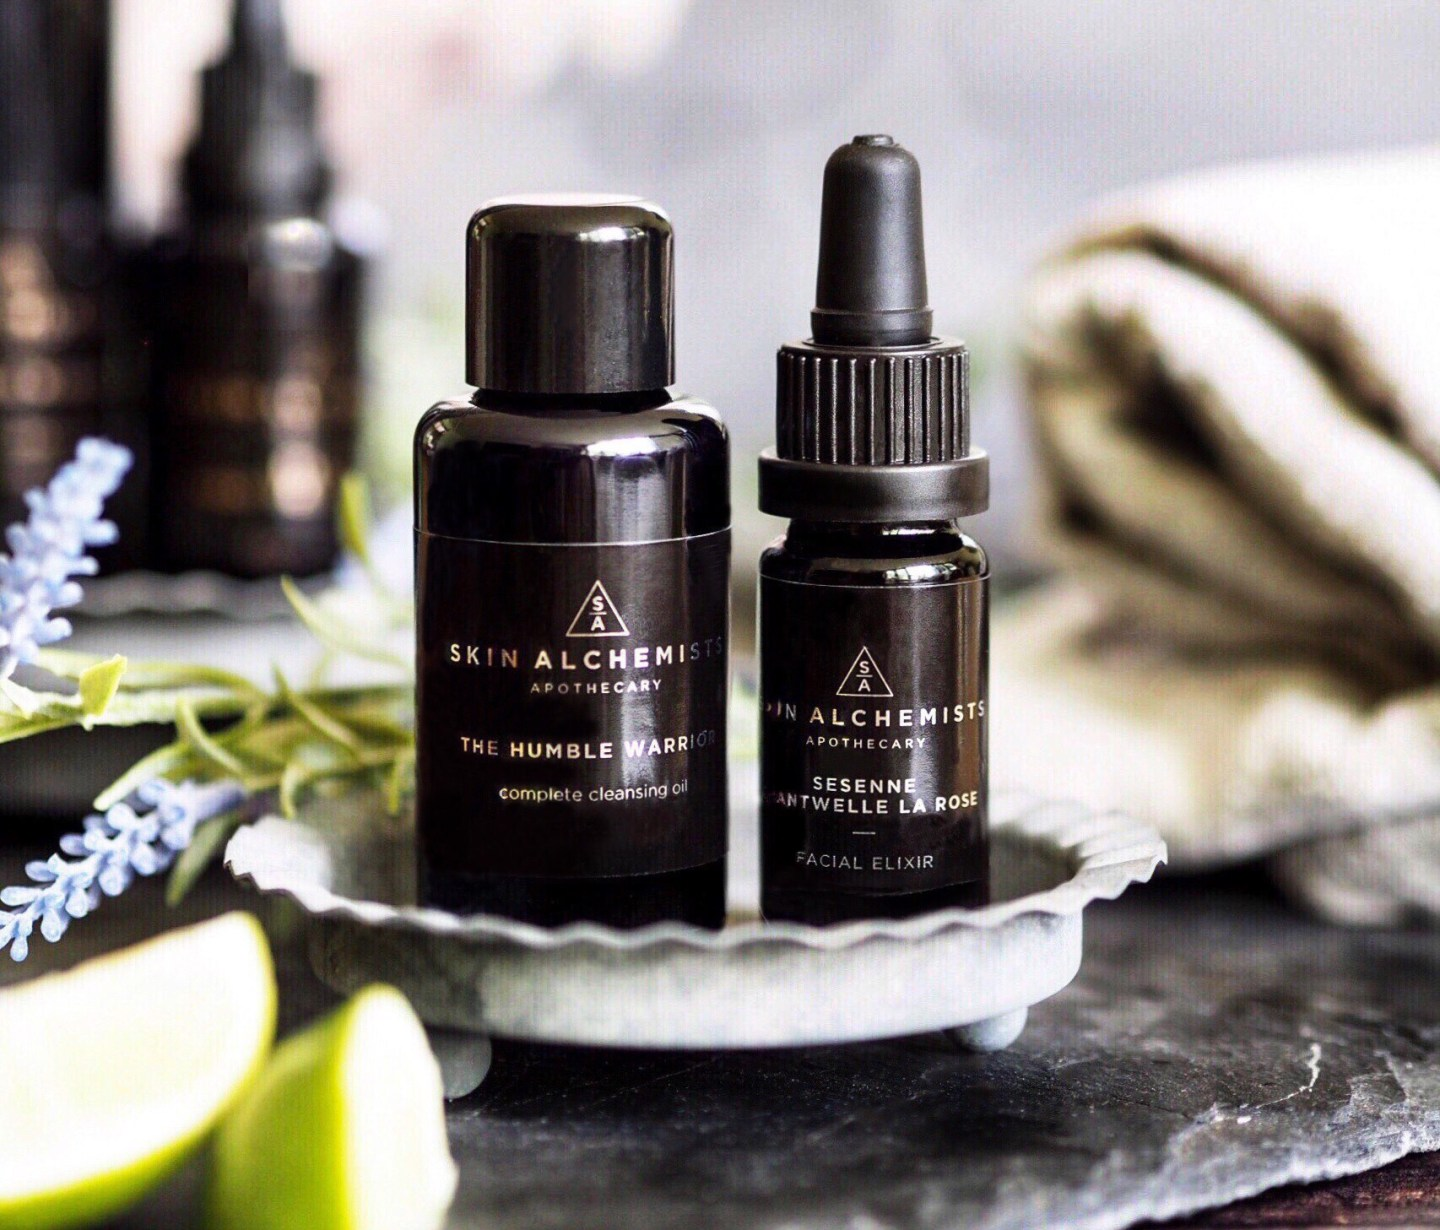 Skin Alchemists Apothecary product review